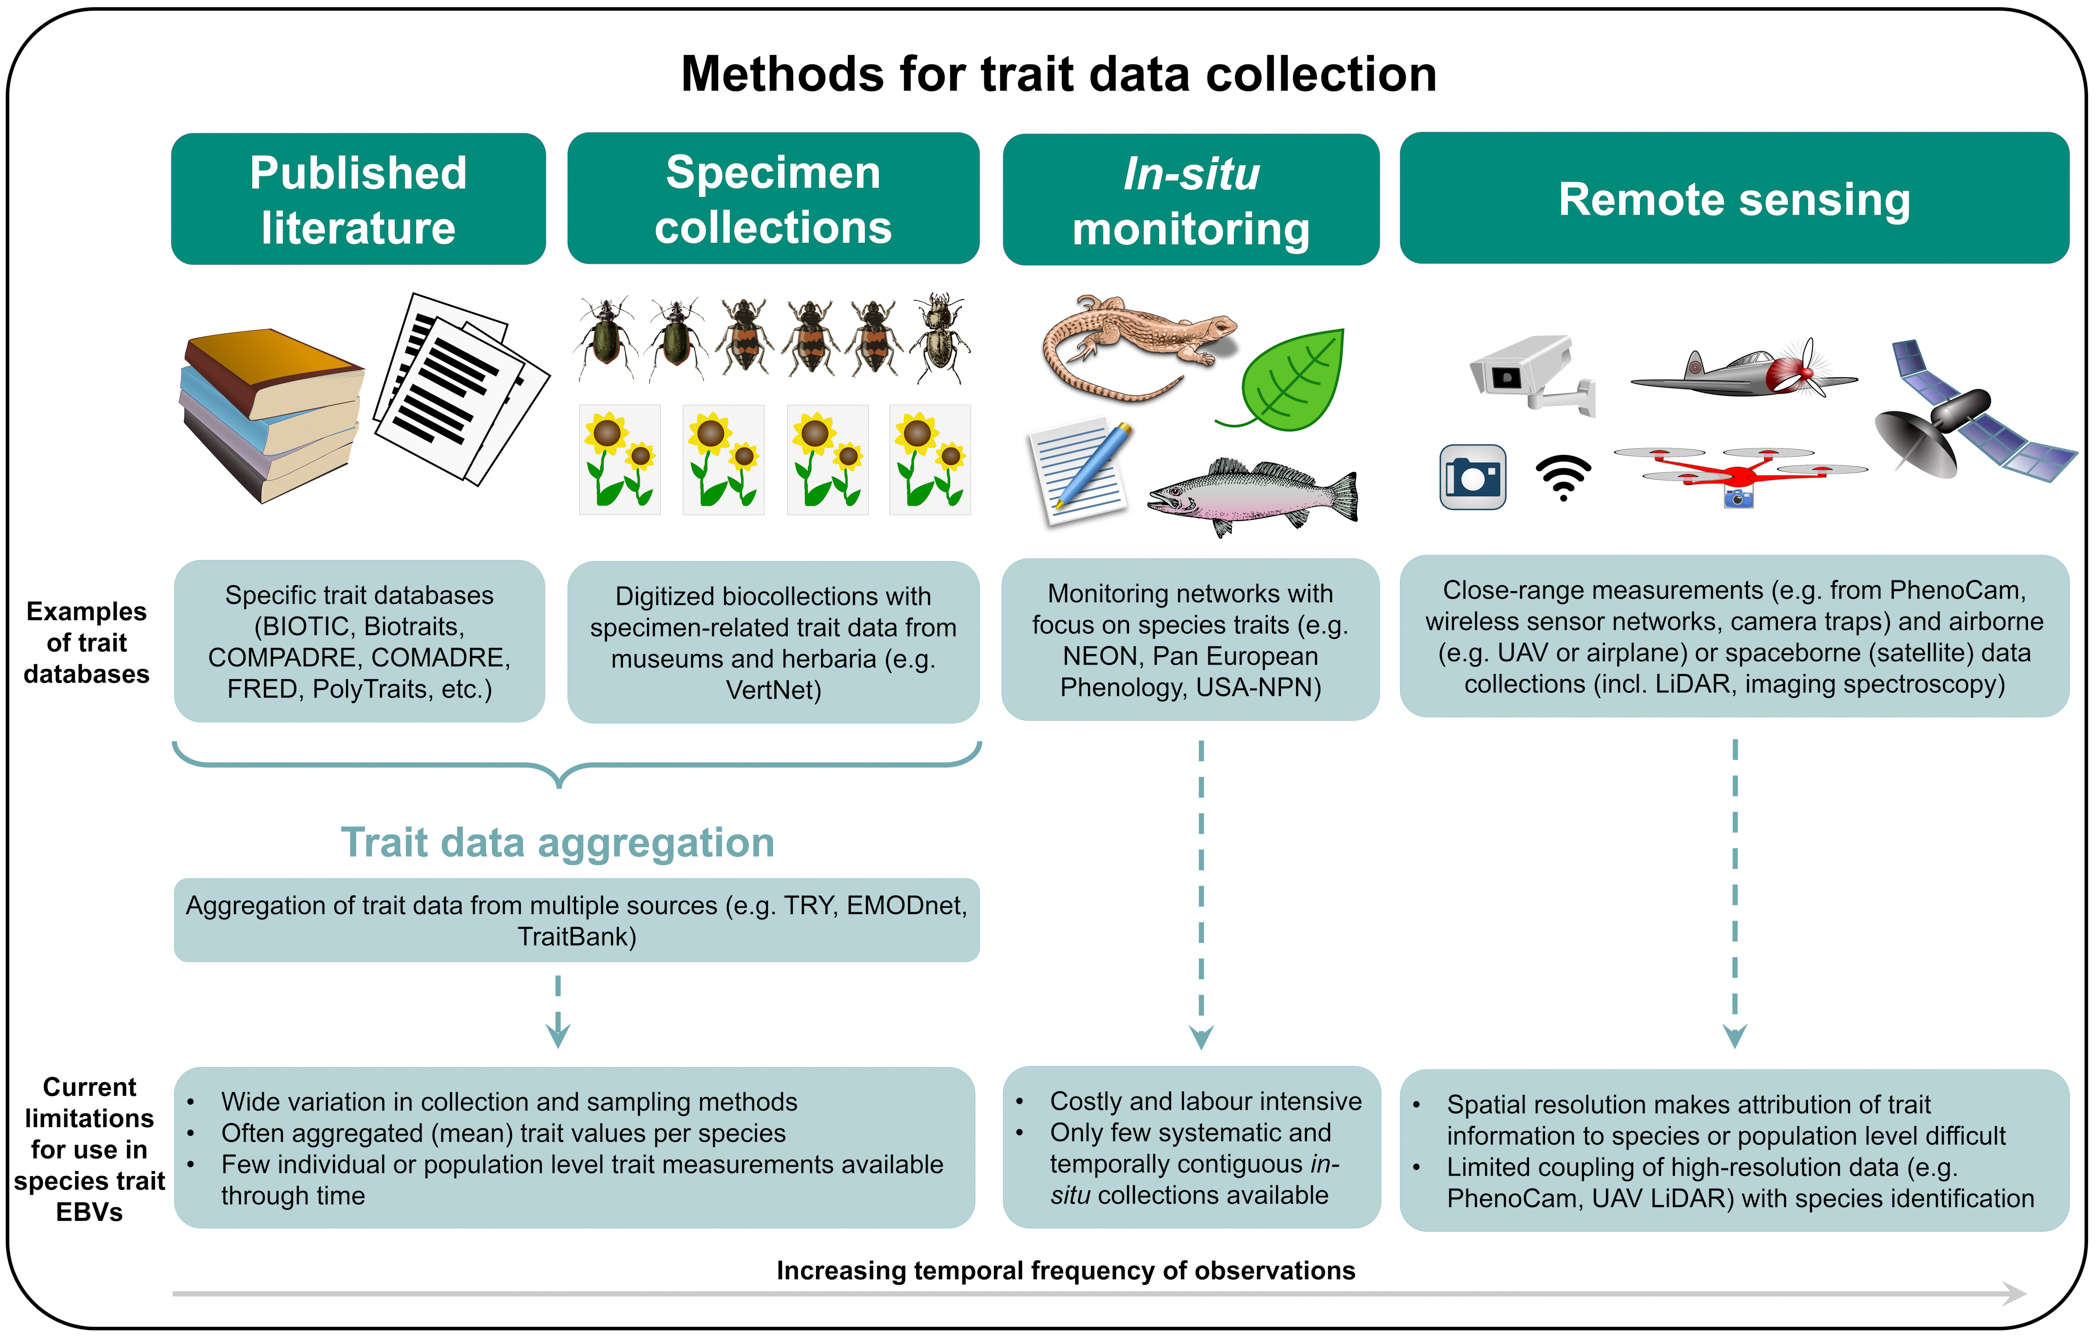 figure showing how trait data will be collected and aggregated